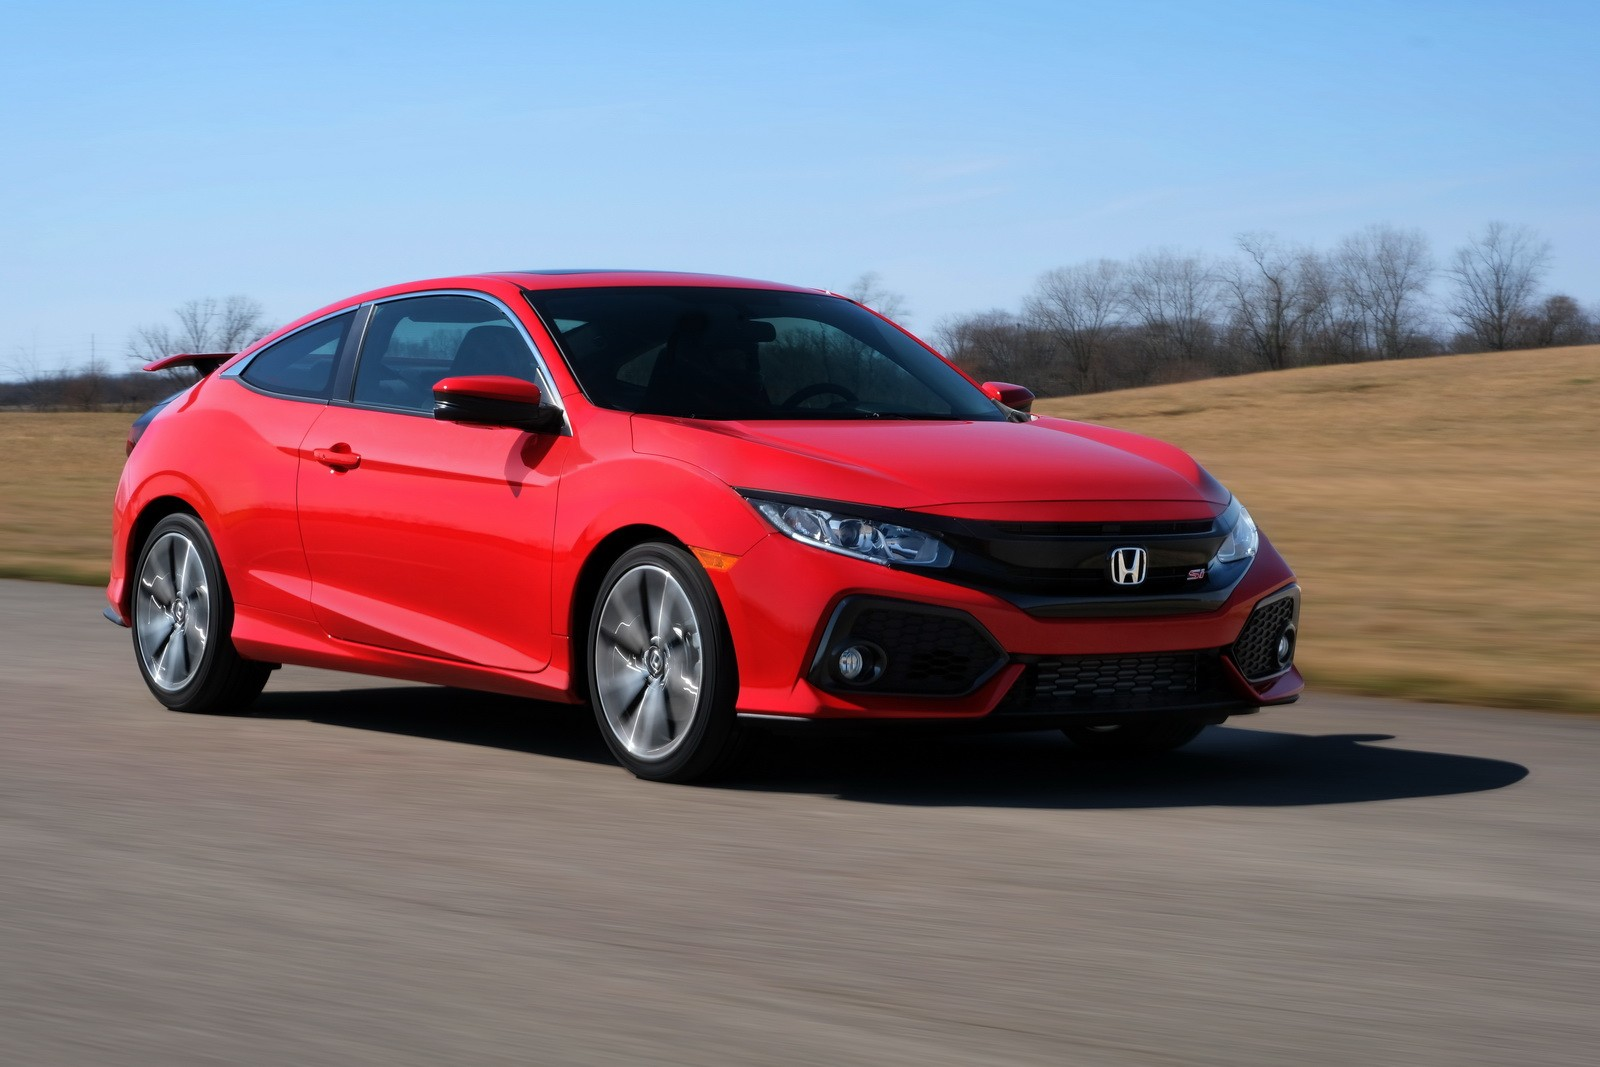 2018 honda civic priced 100 higher than 2017 model autoevolution. Black Bedroom Furniture Sets. Home Design Ideas